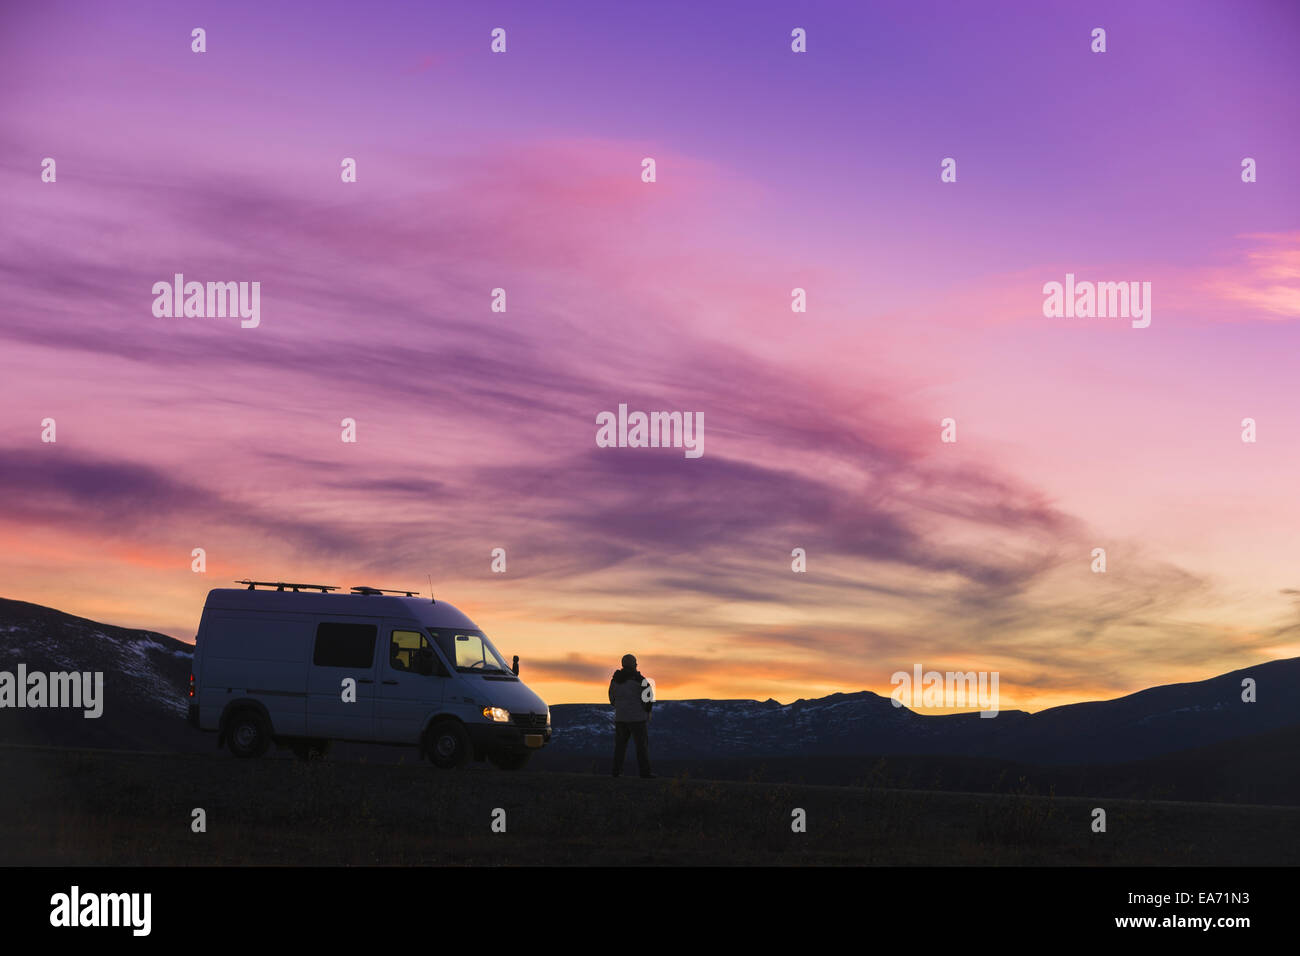 2a9b89361f Camper Van Silhouette Stock Photos   Camper Van Silhouette Stock ...